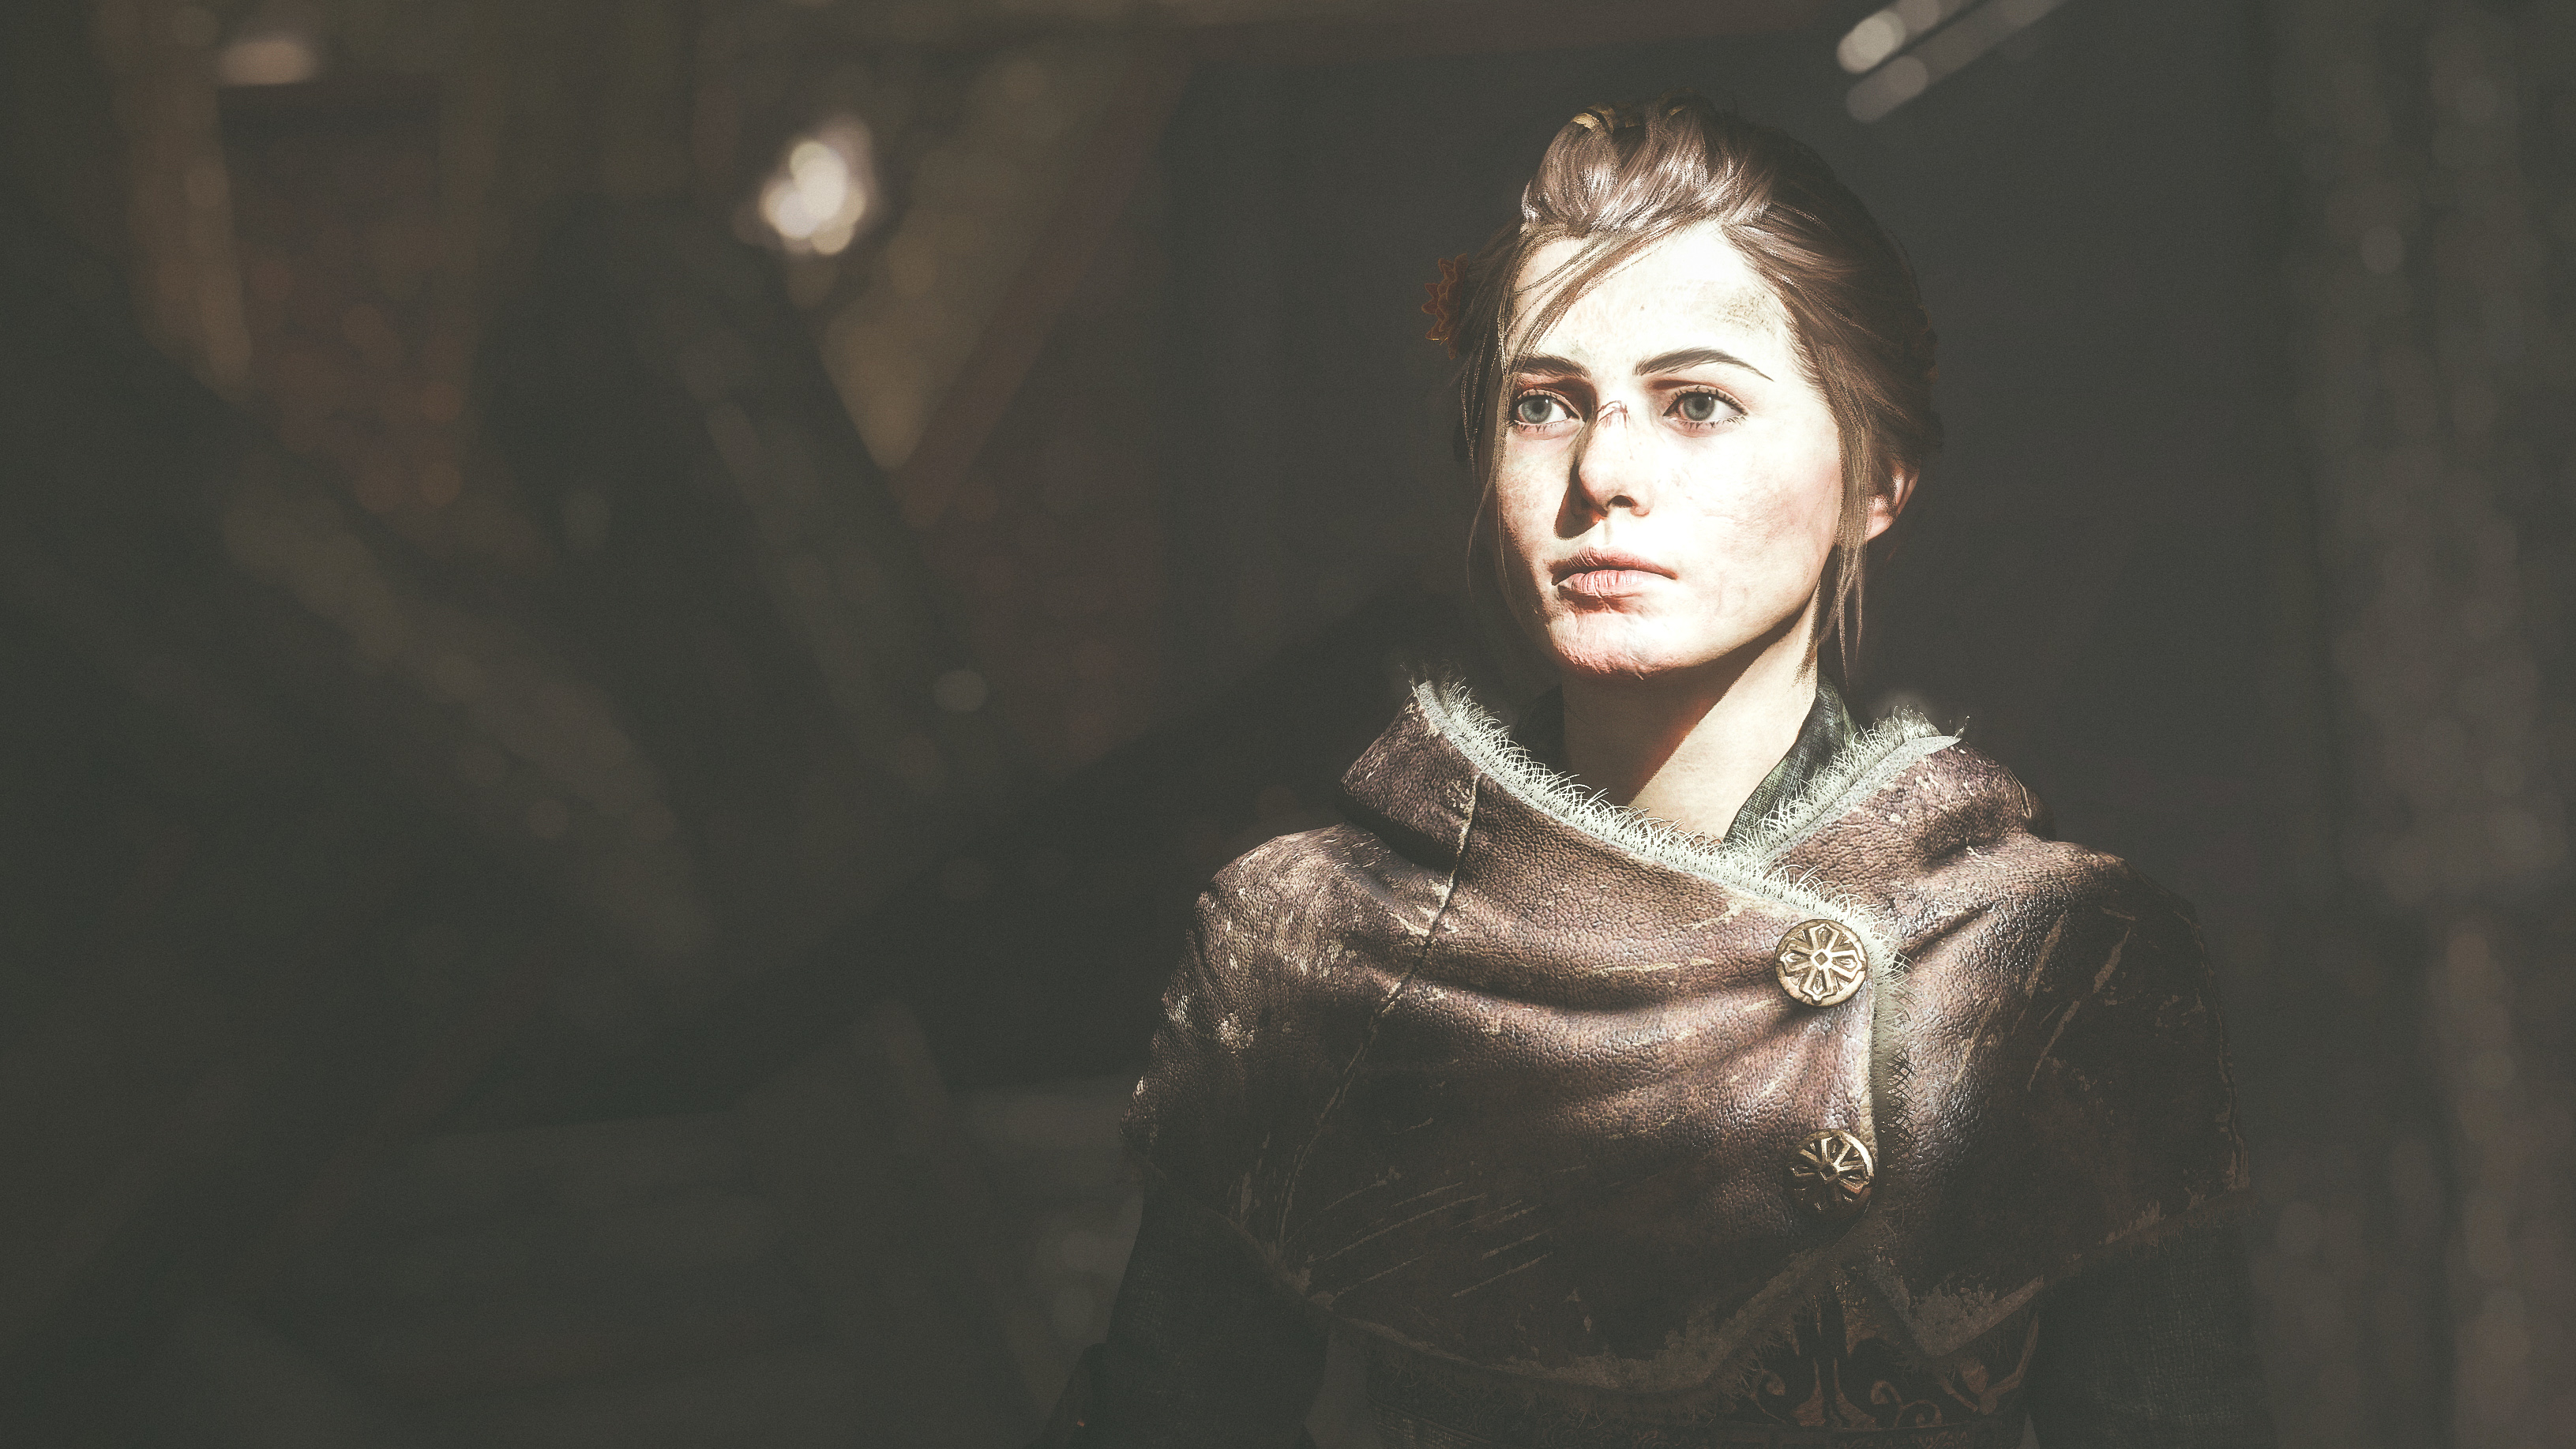 Game A Plague Tale Innocence Wallpaper Hd Games 4k Wallpapers